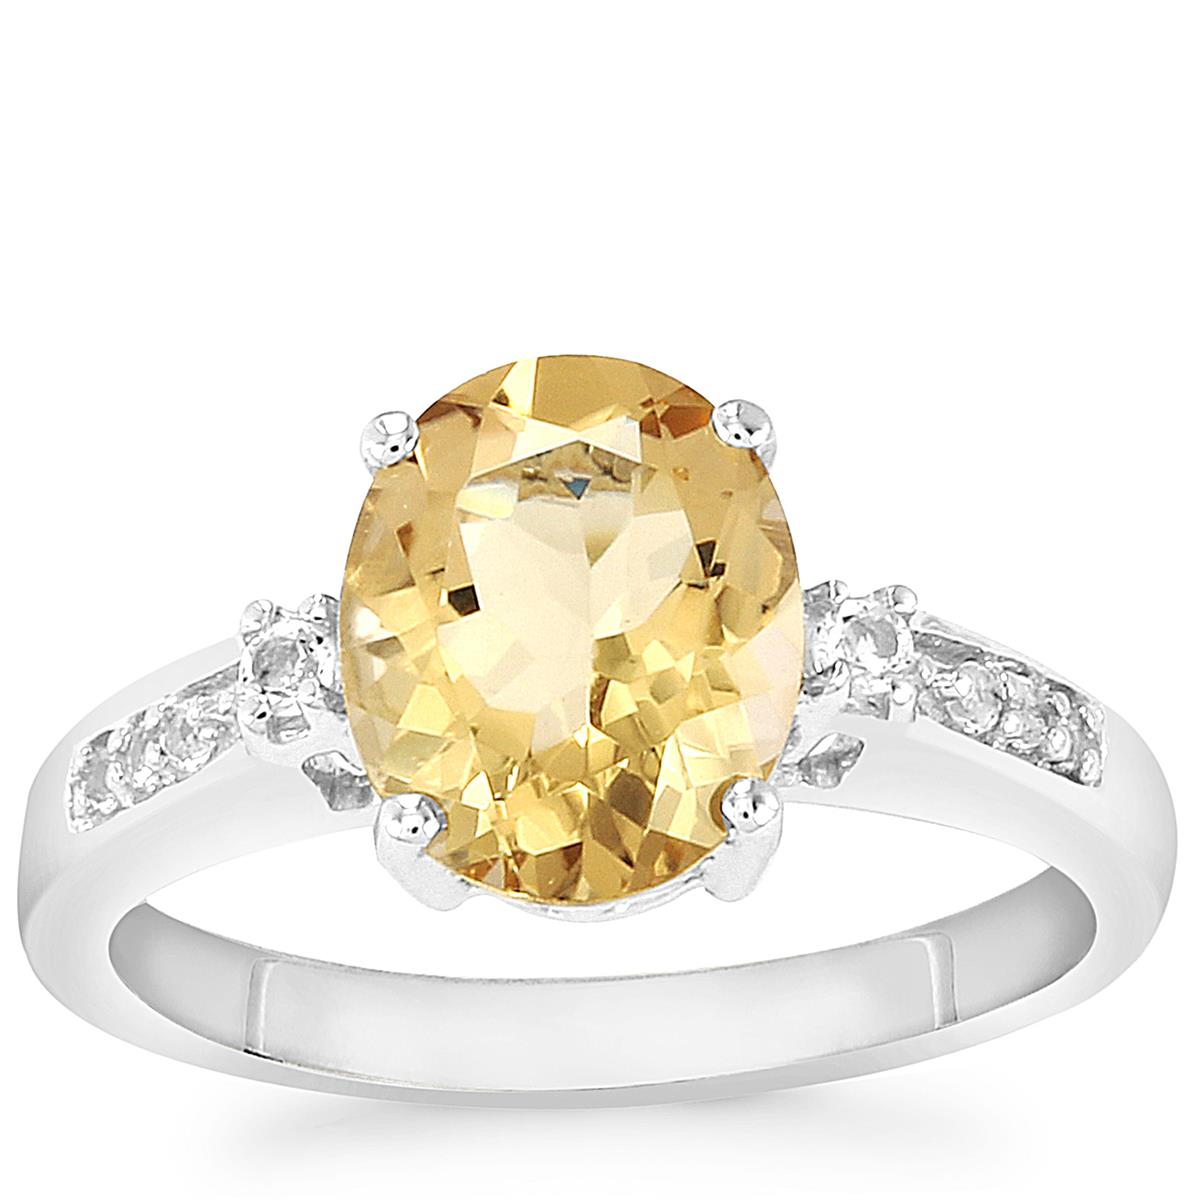 Bolivian Natural Champagne Quartz Ring with White Topaz in Sterling Silver 2.33cts